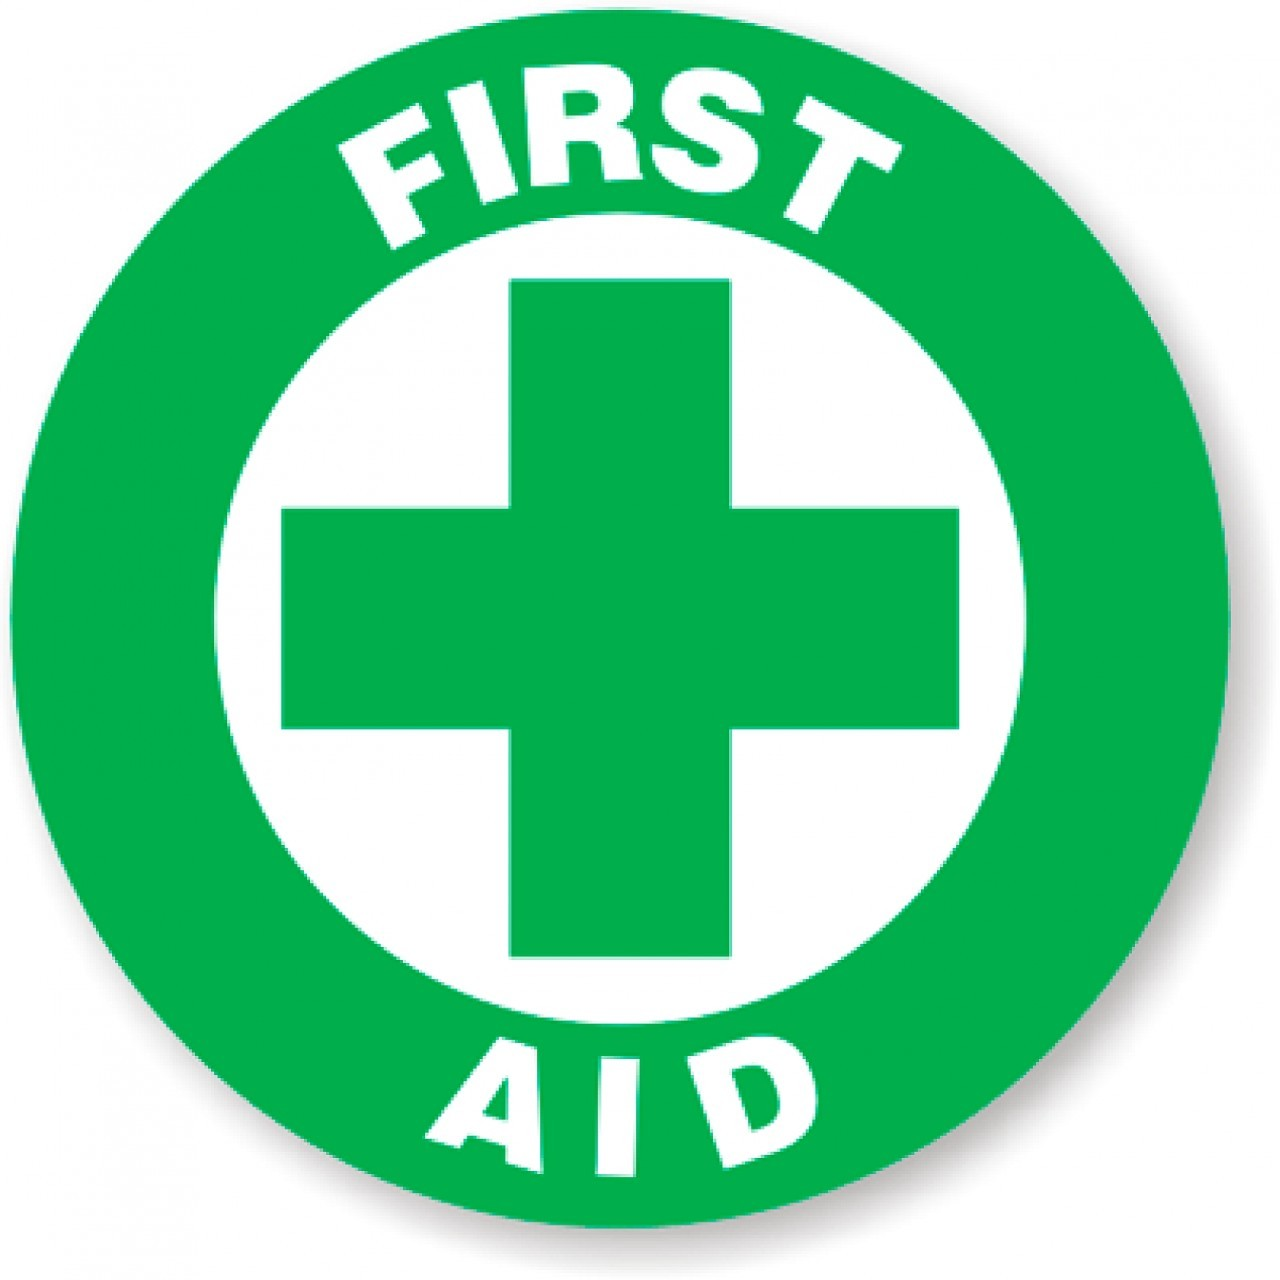 First Aid Clipart - Cliparts.co